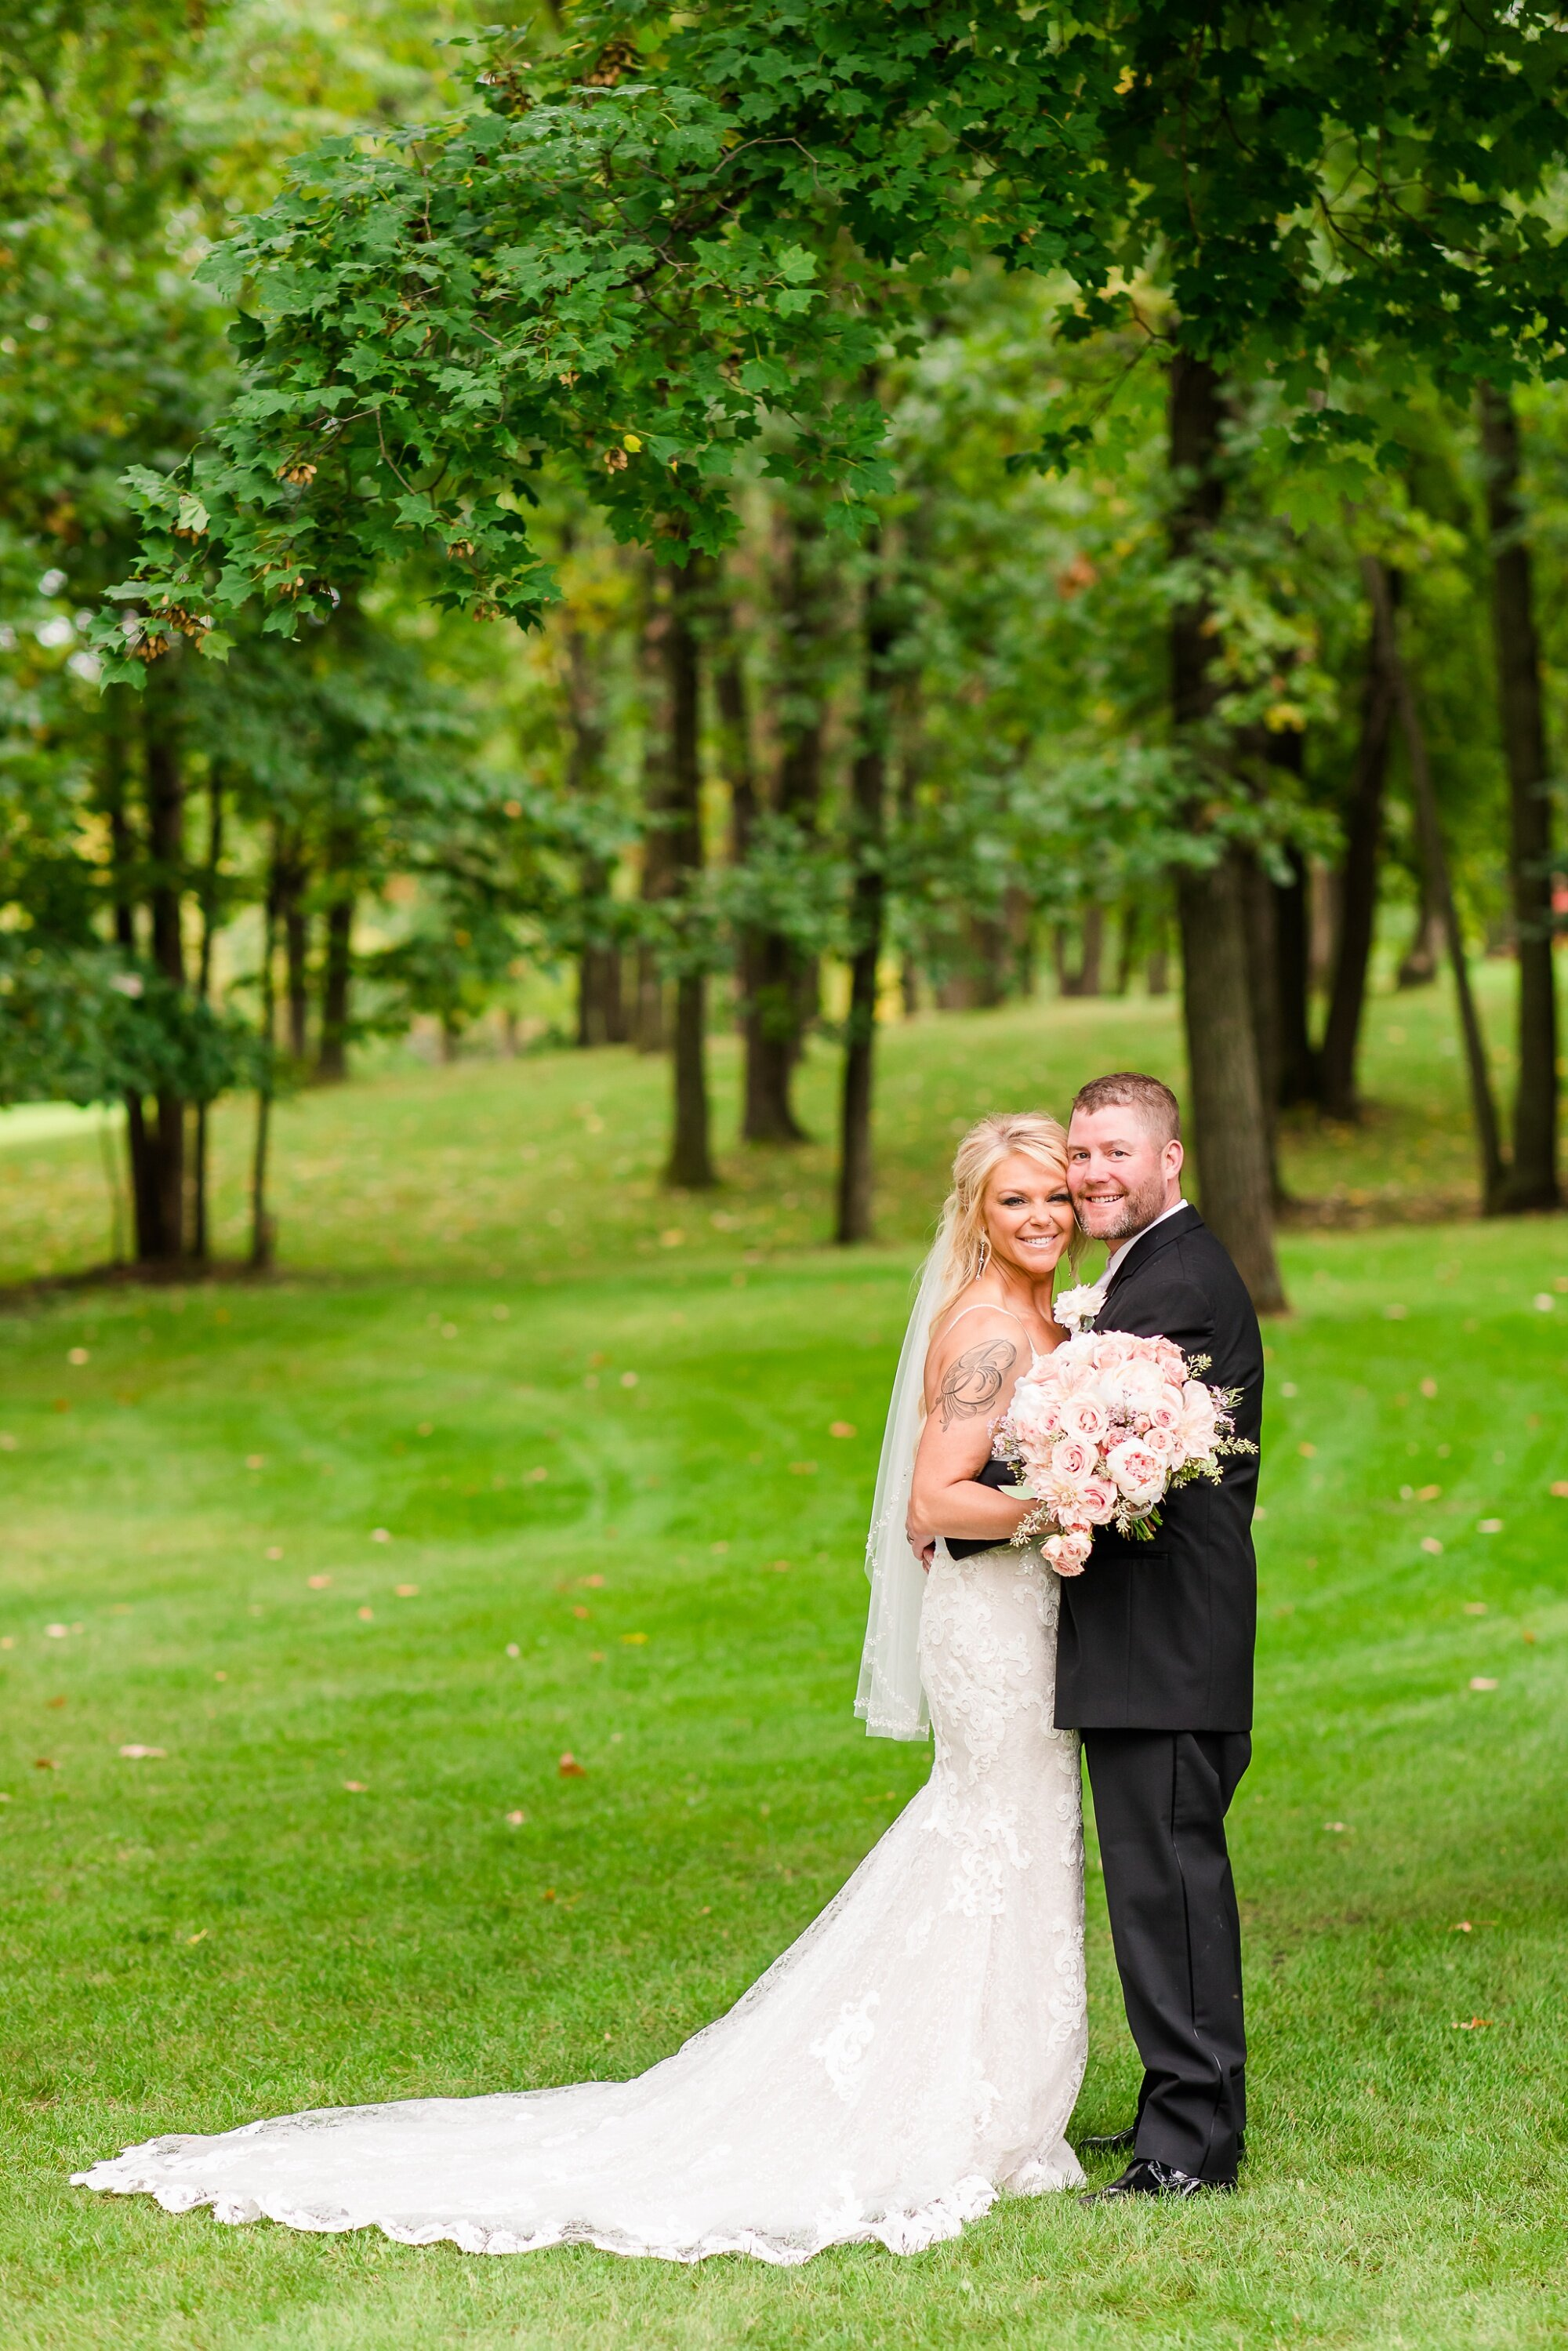 Amber Langerud Photography_Eagle Lake Rustic Styled Outdoor Wedding in Minnesota_6838.jpg